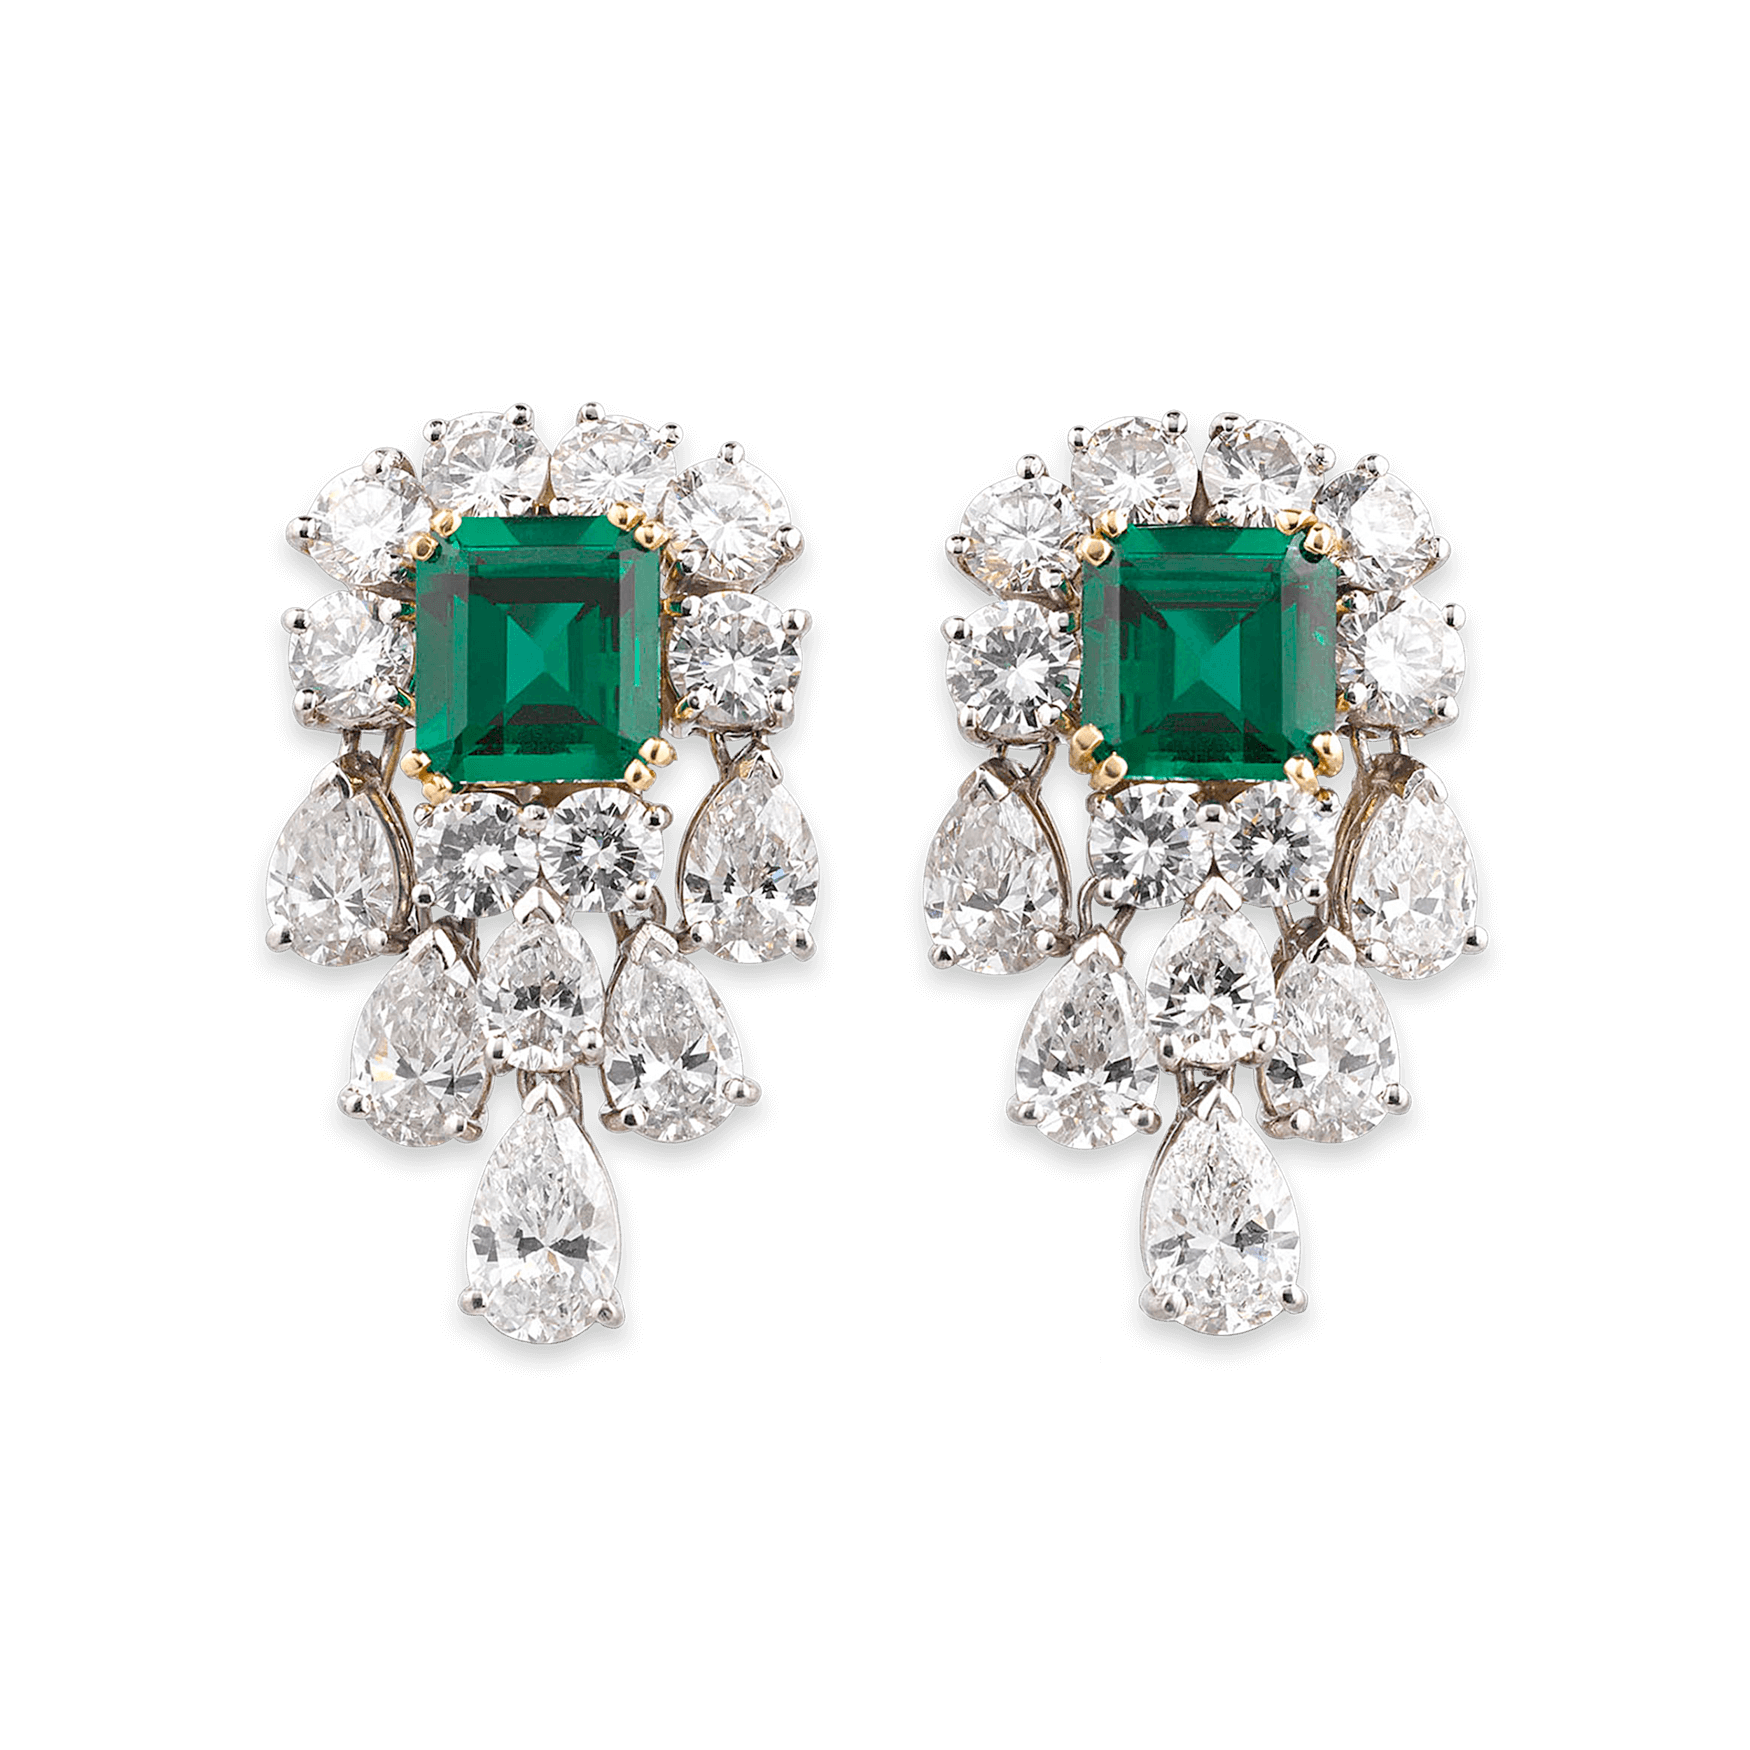 Estate Jewelry Colored Gemstones Old Mine Emerald And Diamond Earrings M S Rau Antiques